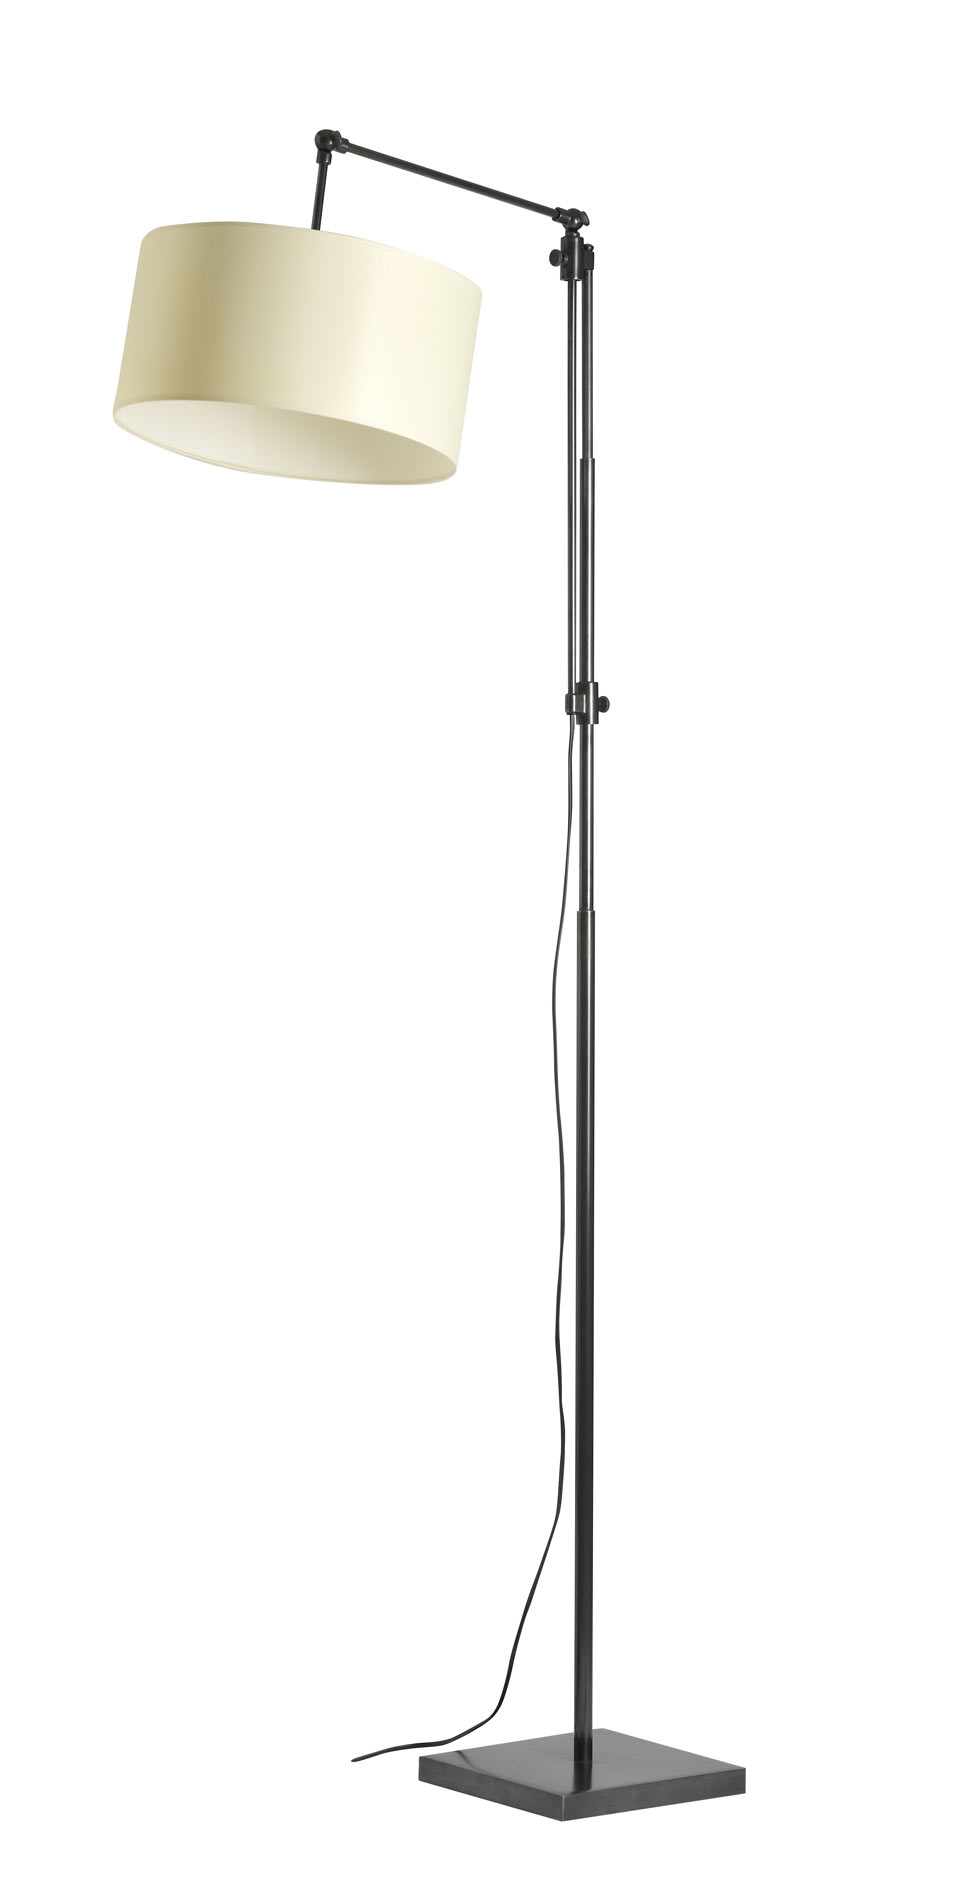 Large Floor Lamp Reading Lamp With Gallows Round Lampshade Black